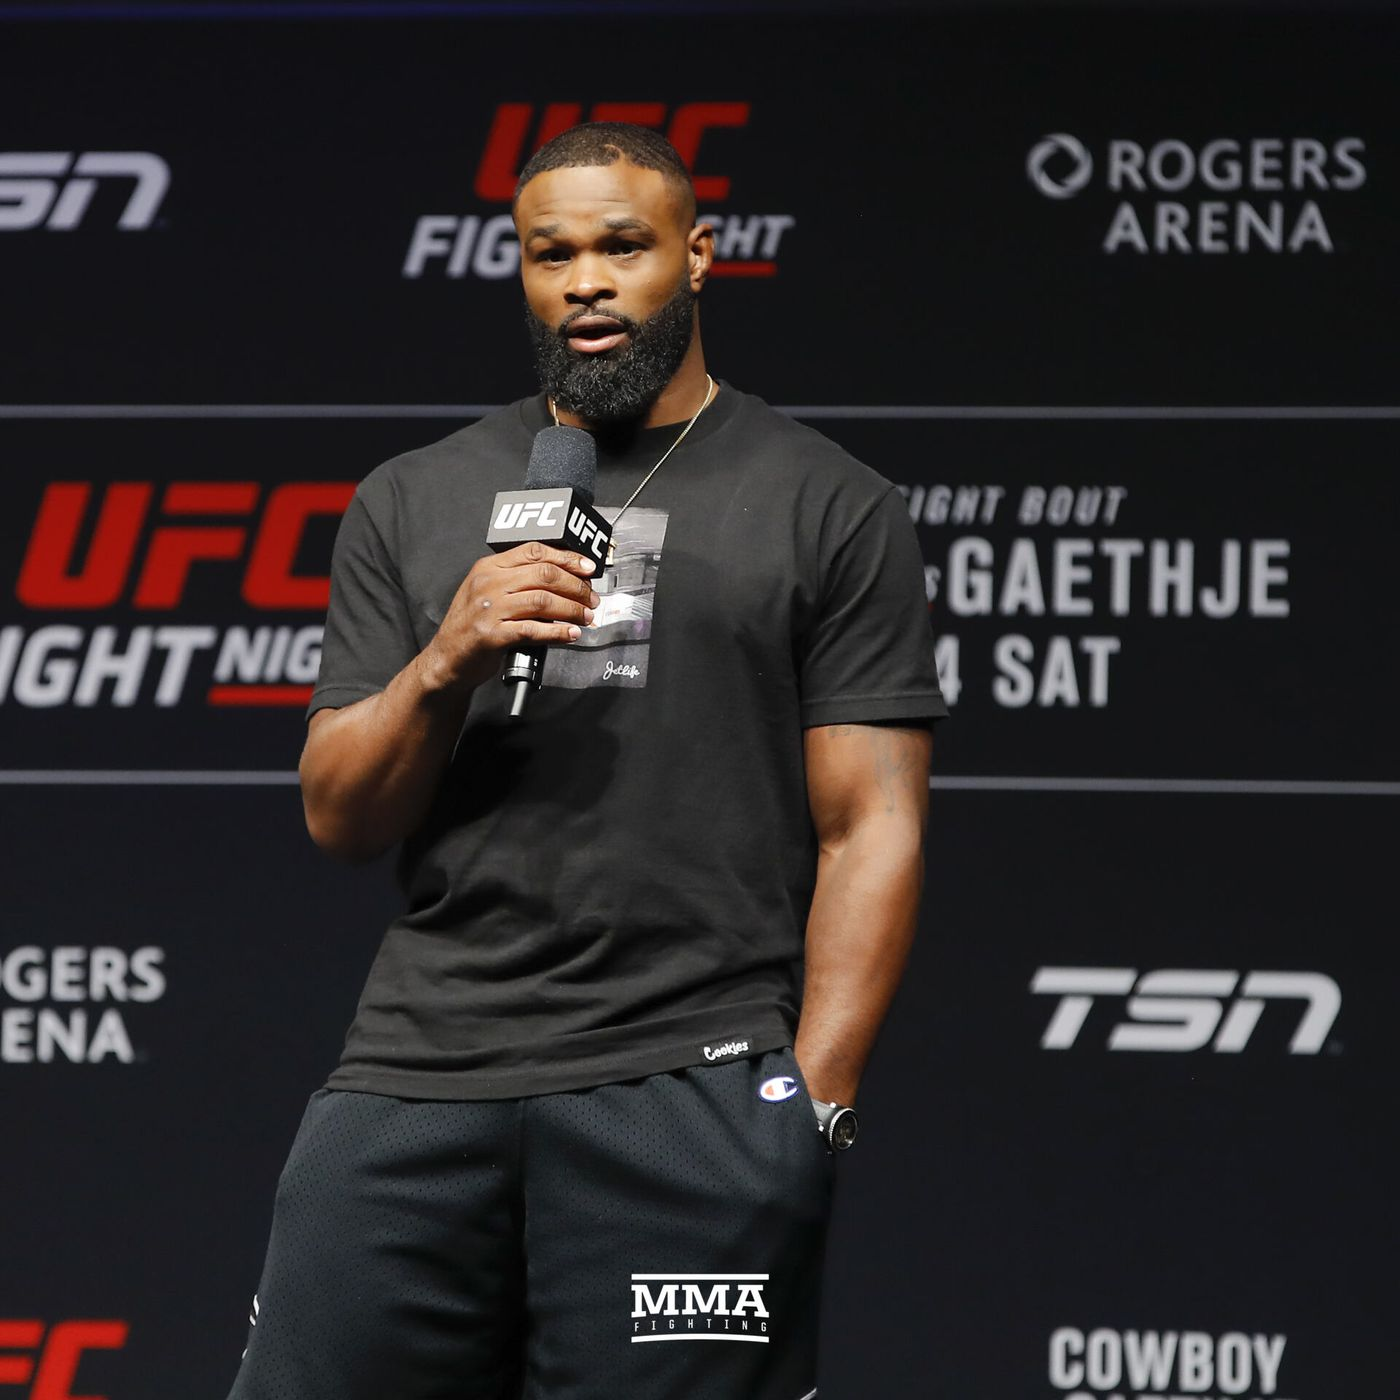 Morning Report Tyron Woodley Responds To Colby Covington He Said No Six Times And Now Creates A Date That Works For Him Mma Fighting